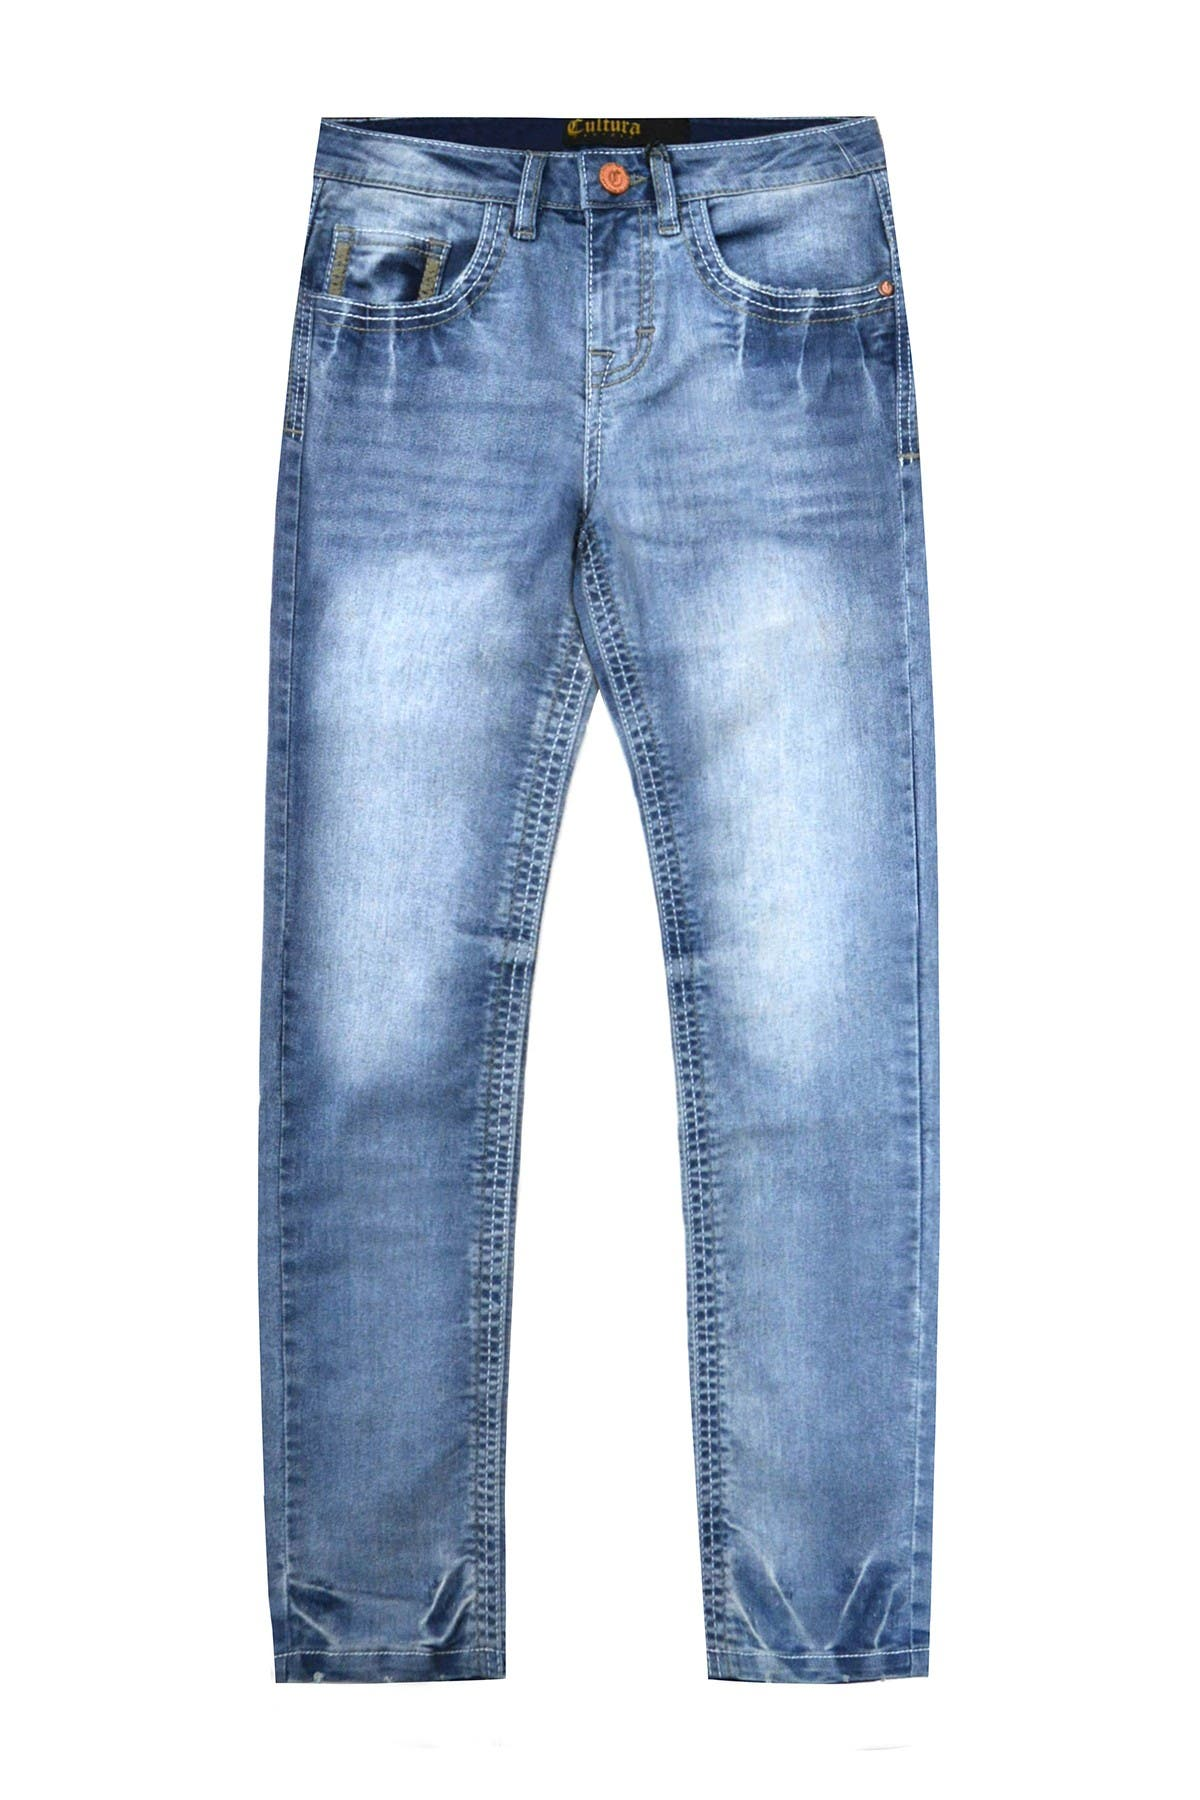 Image of XRAY Stretch Slim Fit Jeans